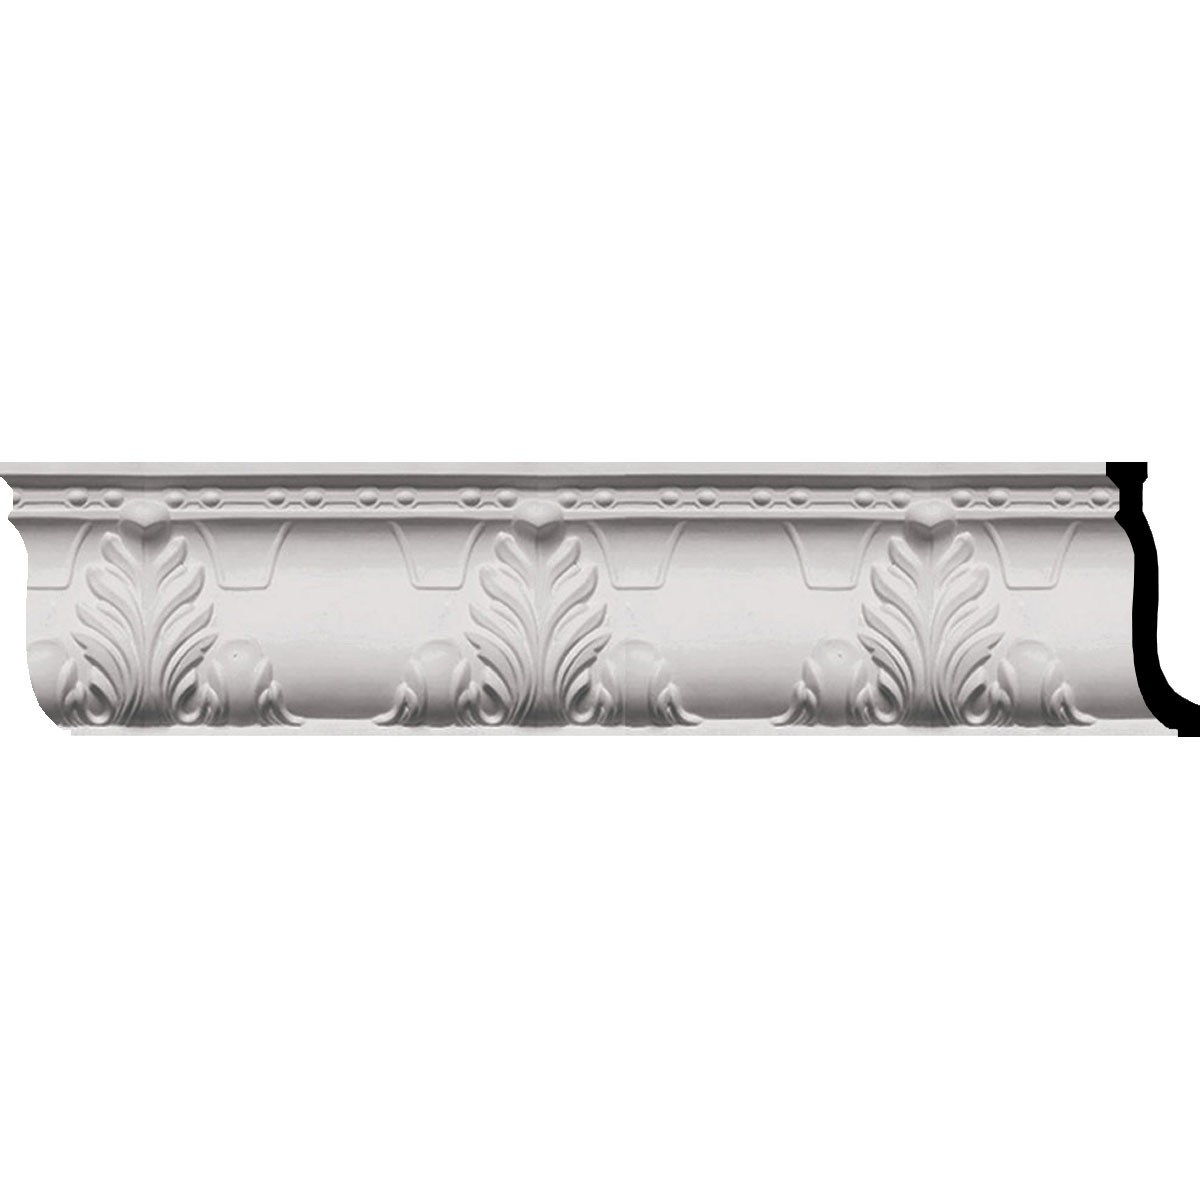 """EM-MLD09X03X10AL - 9 1/4""""H x 3 3/4""""P x 9 7/8""""F x 96""""L Alexandria Acanthus Leaf and Ribbons Crown Moulding"""